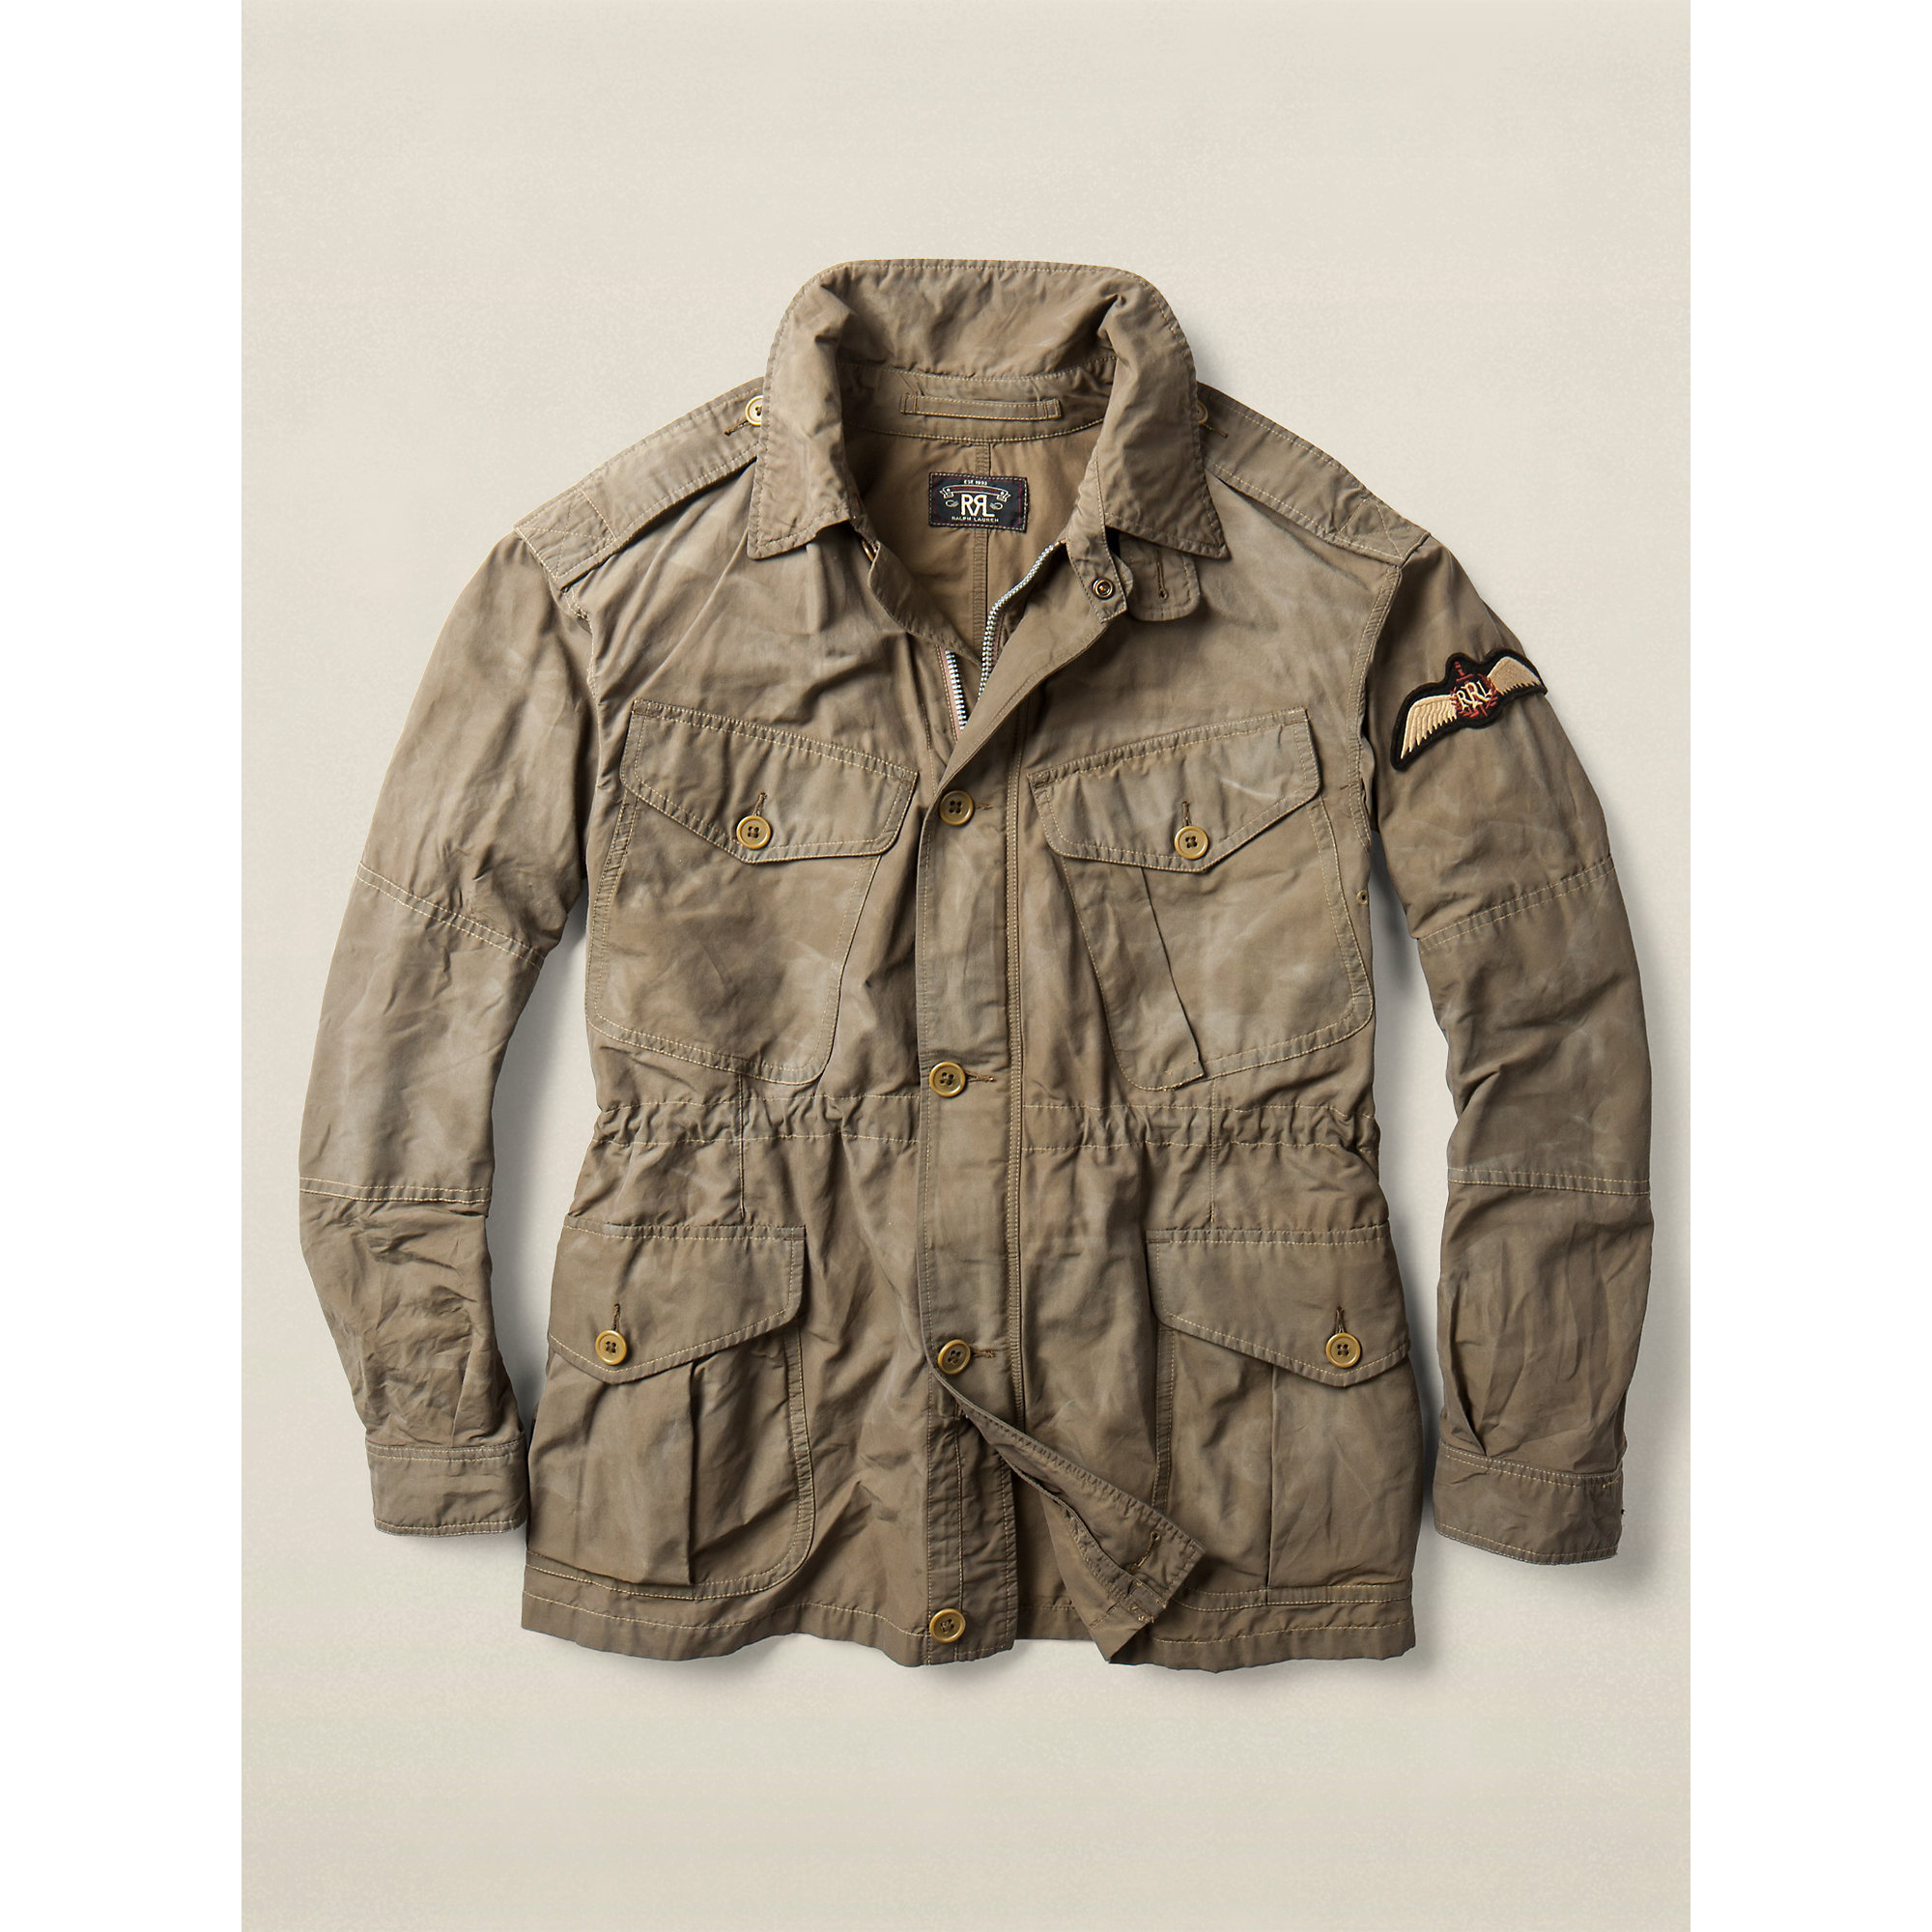 c6c9174be4 Lyst - Ralph Lauren Rawlins Military Jacket in Green for Men